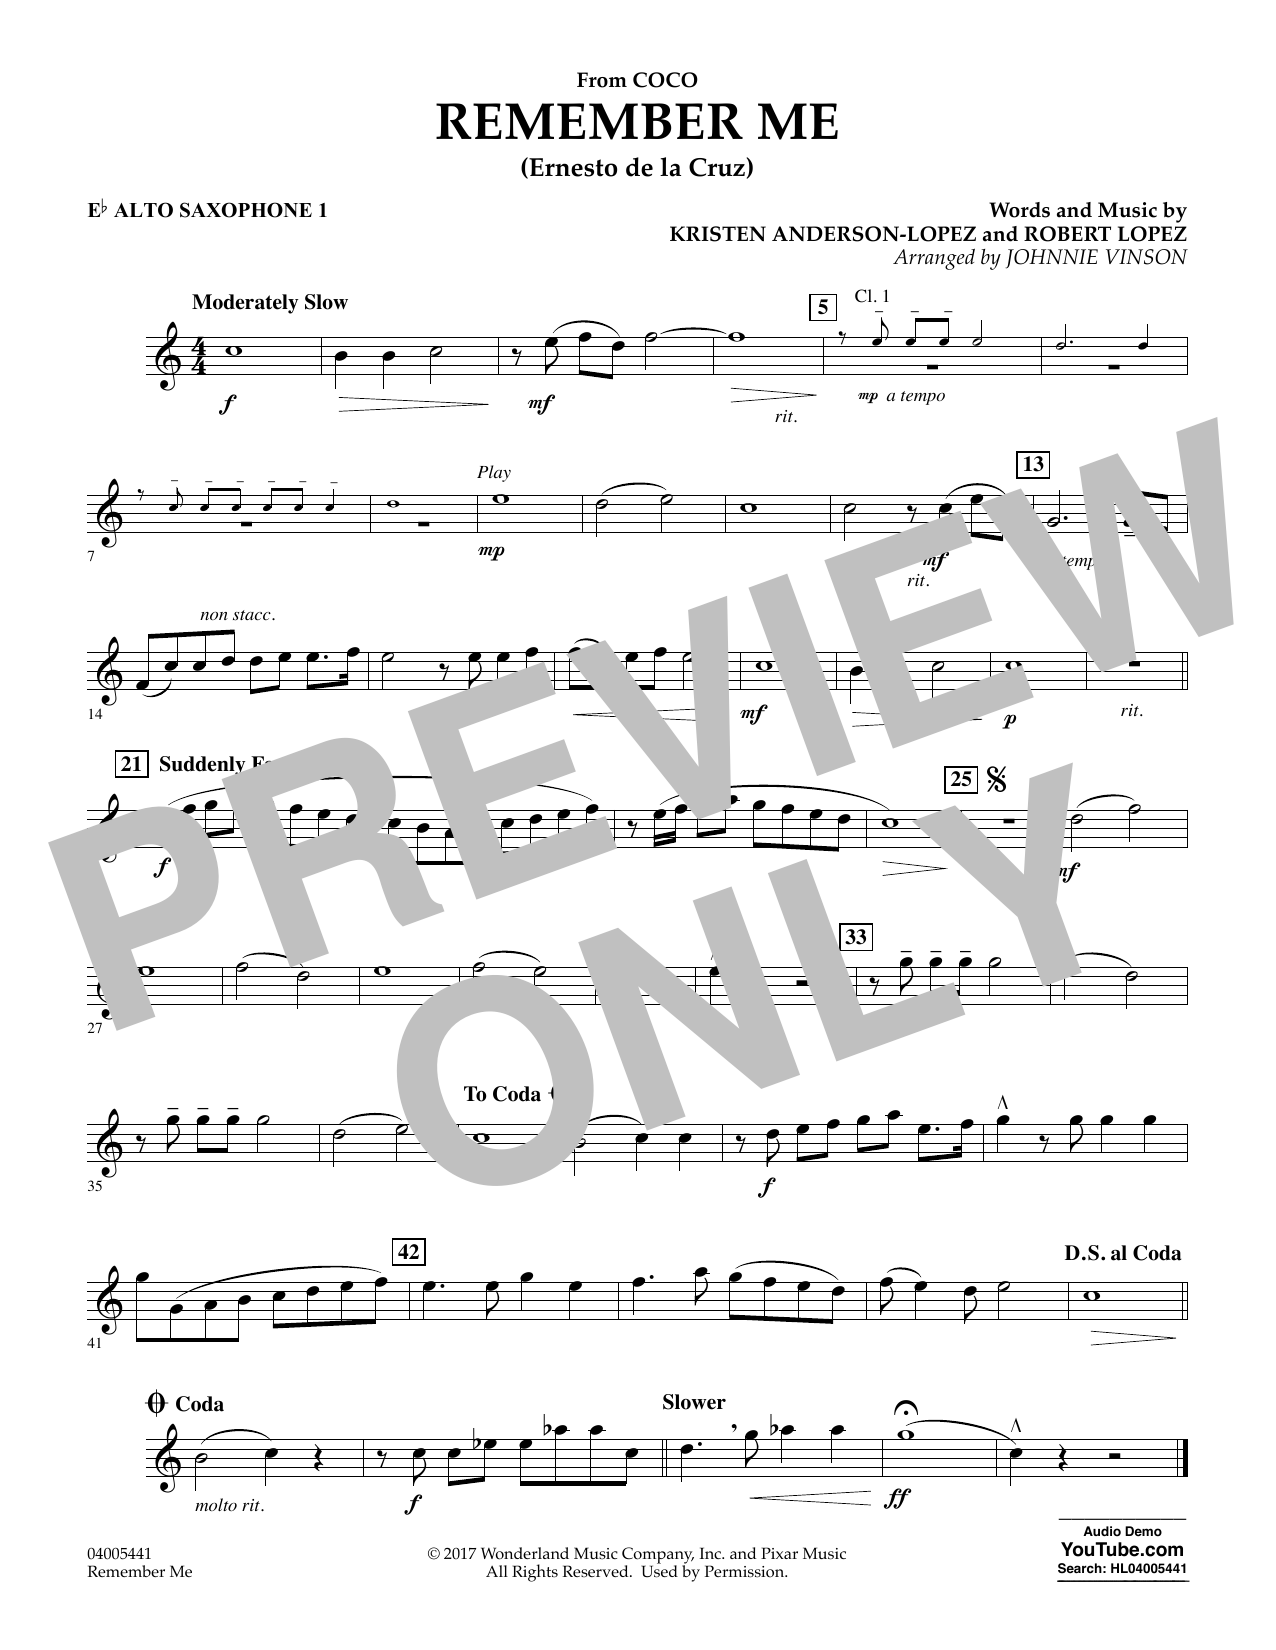 Kristen Anderson-Lopez & Robert Lopez Remember Me (from Coco) (arr. Johnnie Vinson) - Eb Alto Saxophone 1 sheet music notes and chords. Download Printable PDF.